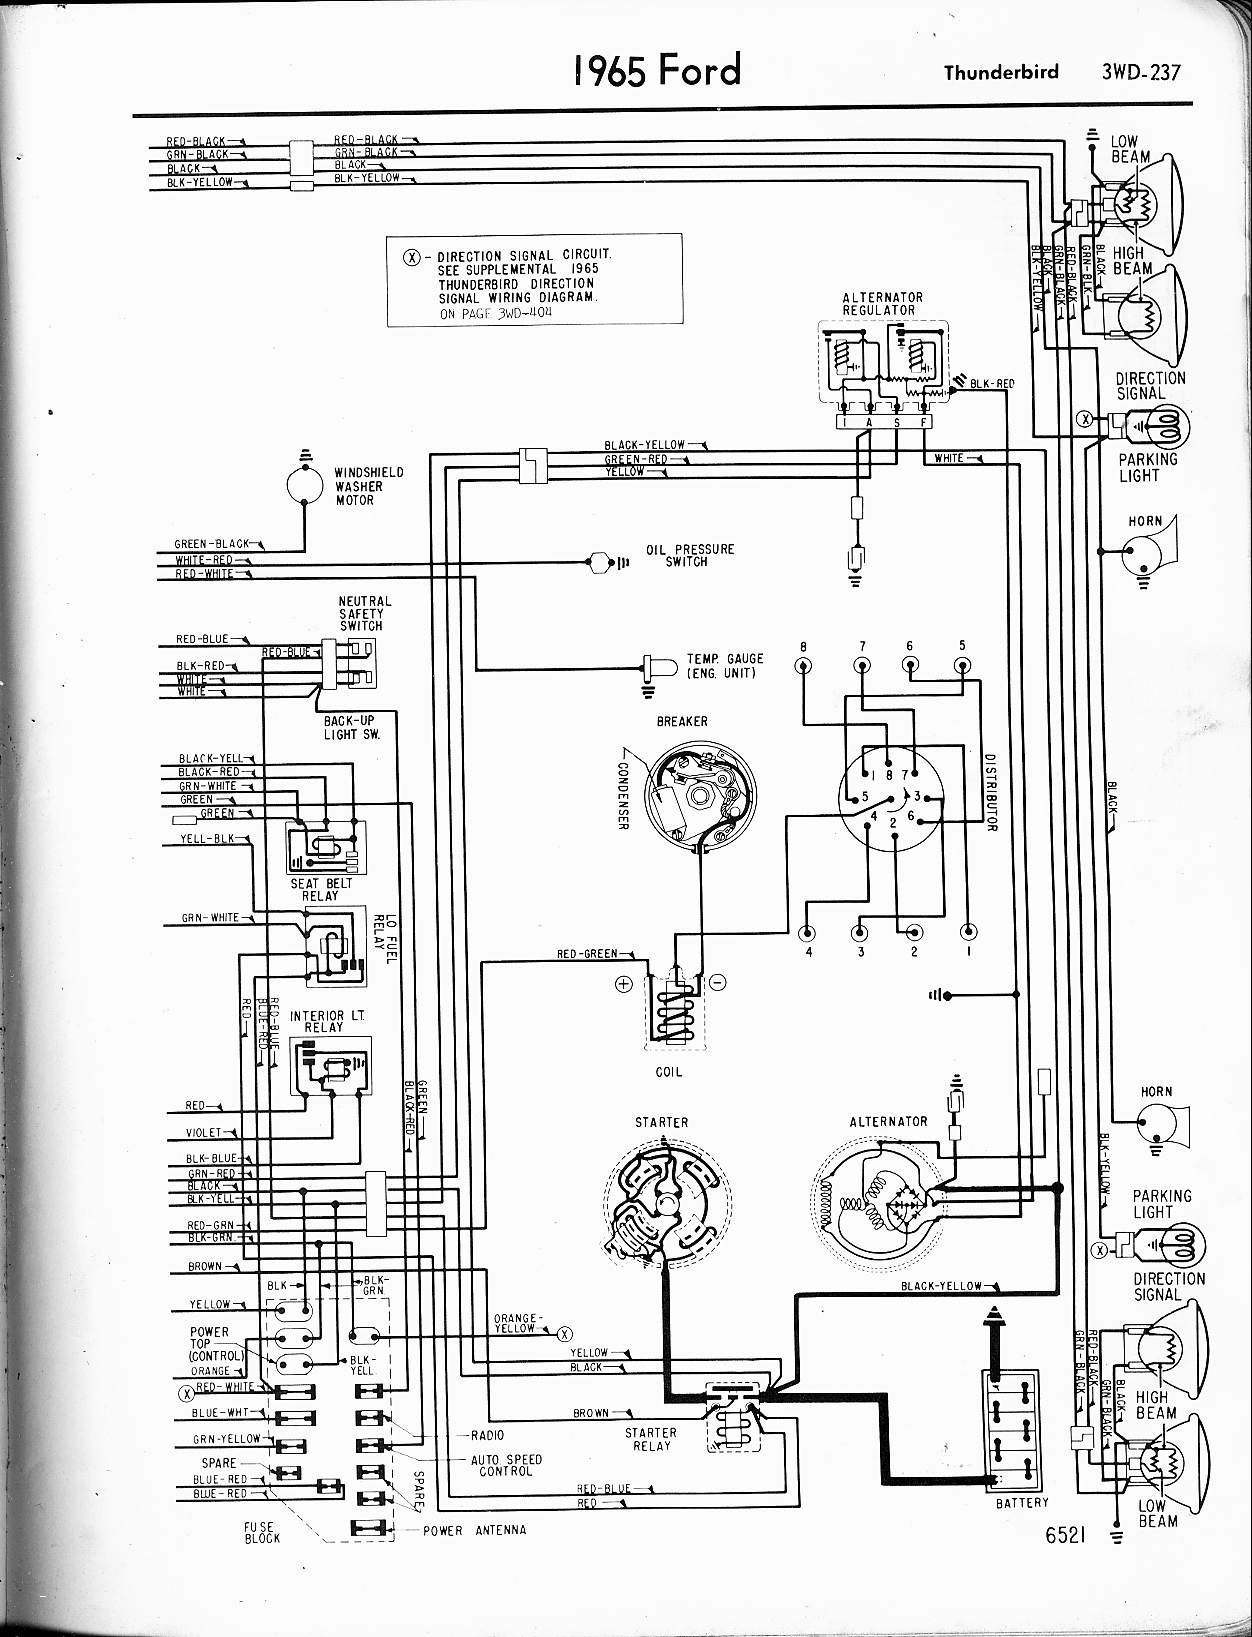 Denso One Wire Alternator Wiring Diagram - on nissan wiring diagram, delco wiring diagram, dorman wiring diagram, panasonic wiring diagram, kawasaki wiring diagram, toshiba wiring diagram, truck wiring diagram, volvo wiring diagram, mitsubishi wiring diagram, ford wiring diagram, sony wiring diagram, samsung wiring diagram, daihatsu hijet wiring diagram, taylor wiring diagram, bmw wiring diagram, abb wiring diagram, honda wiring diagram, toyota wiring diagram, johnson controls wiring diagram, chrysler wiring diagram,